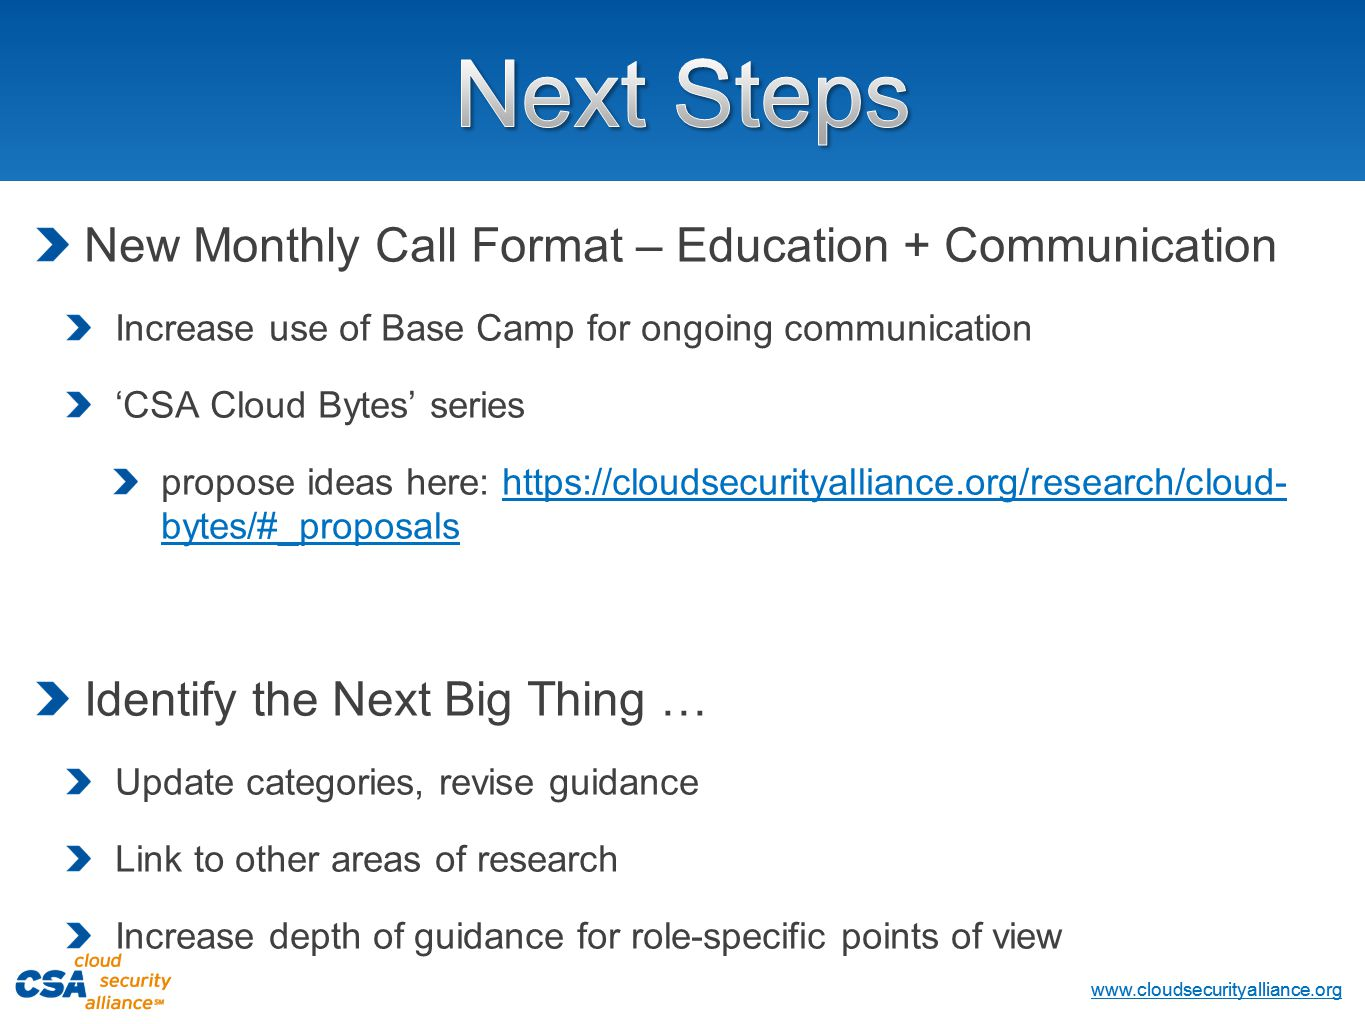 www.cloudsecurityalliance.org Copyright © 2013 Cloud Security Alliance www.cloudsecurityalliance.org New Monthly Call Format – Education + Communication Increase use of Base Camp for ongoing communication 'CSA Cloud Bytes' series propose ideas here: https://cloudsecurityalliance.org/research/cloud- bytes/#_proposalshttps://cloudsecurityalliance.org/research/cloud- bytes/#_proposals Identify the Next Big Thing … Update categories, revise guidance Link to other areas of research Increase depth of guidance for role-specific points of view